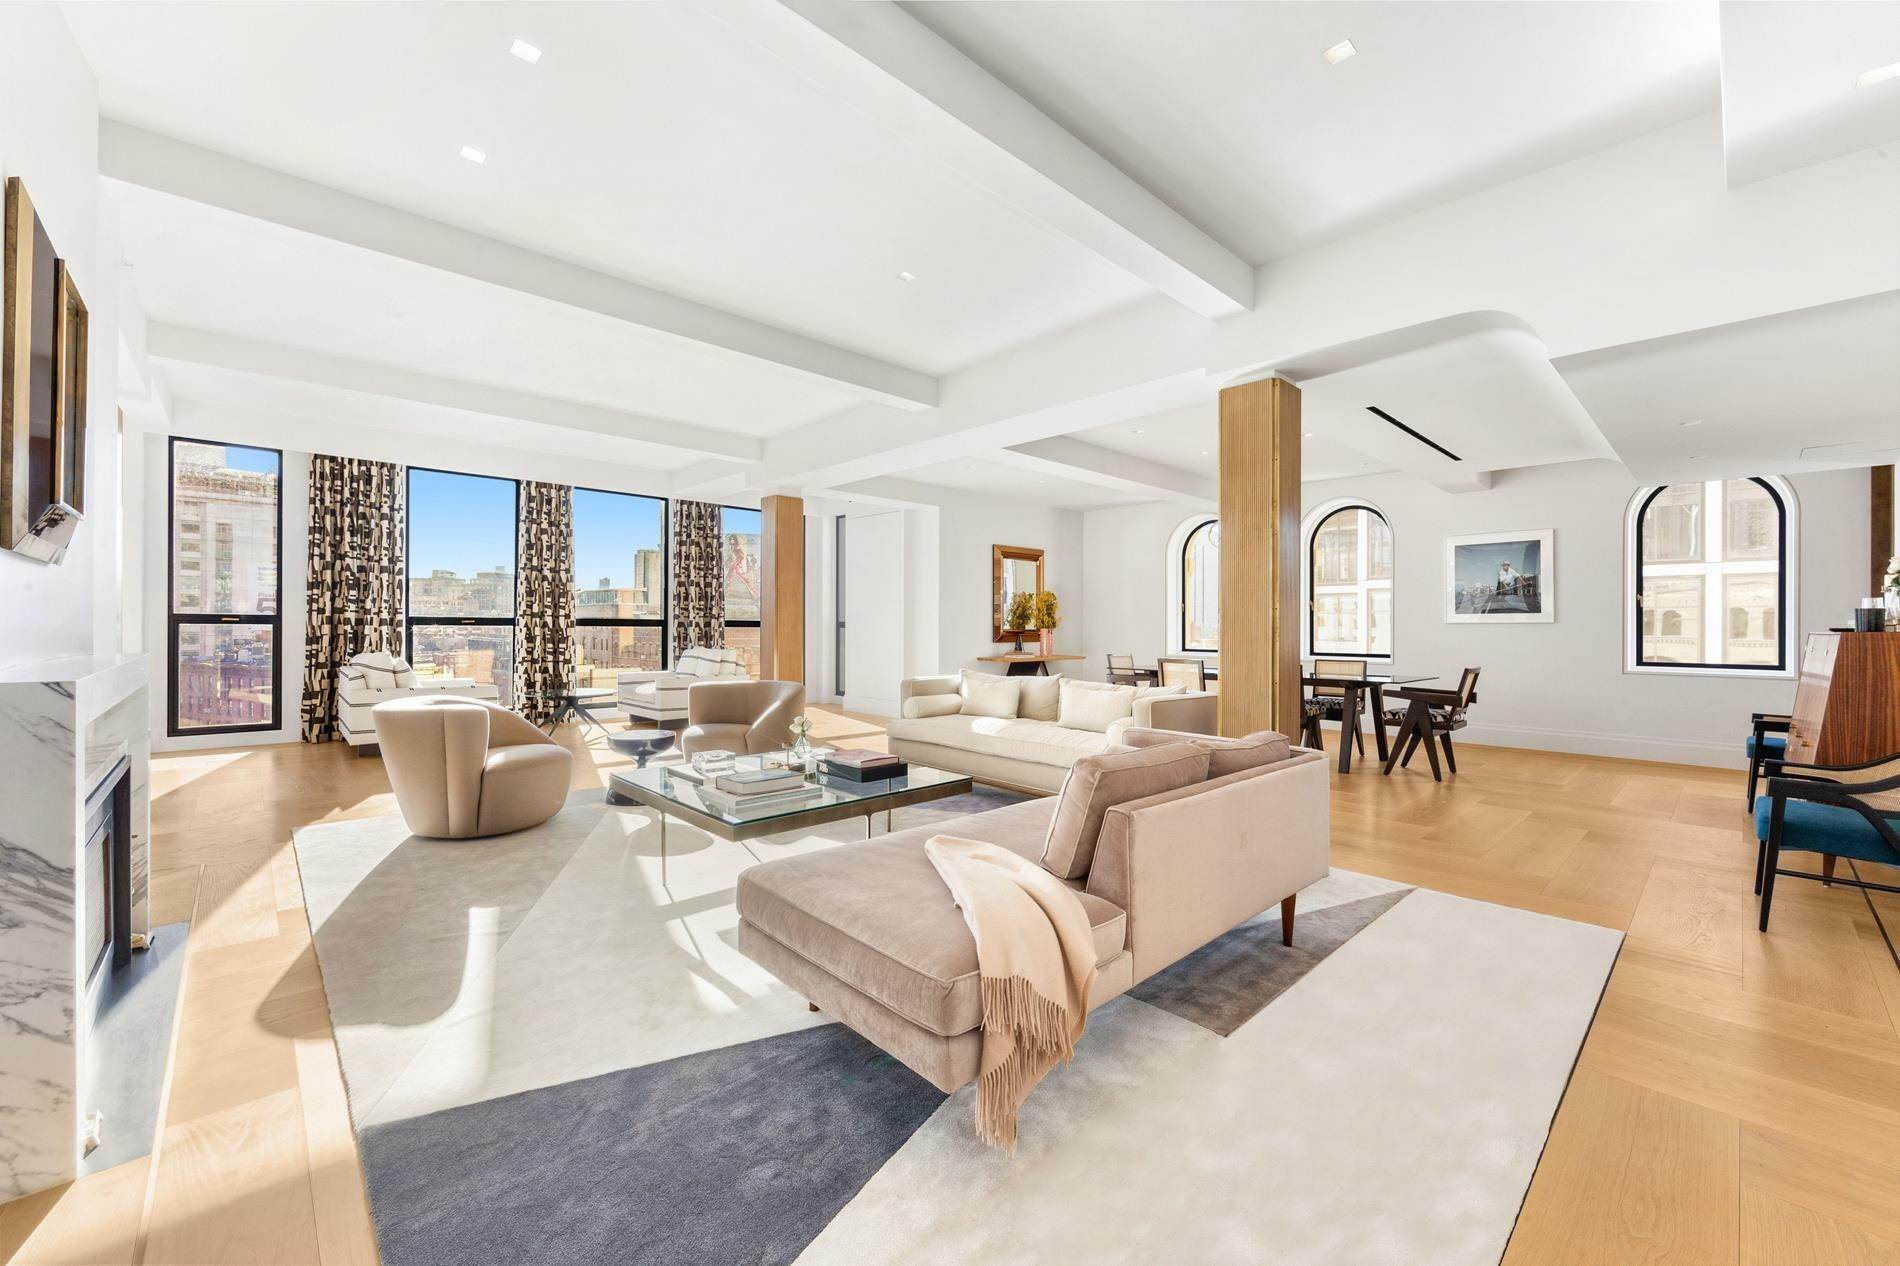 Condominium for Sale at Porter House 66 Ninth Avenue, 6 New York, New York,10011 United States